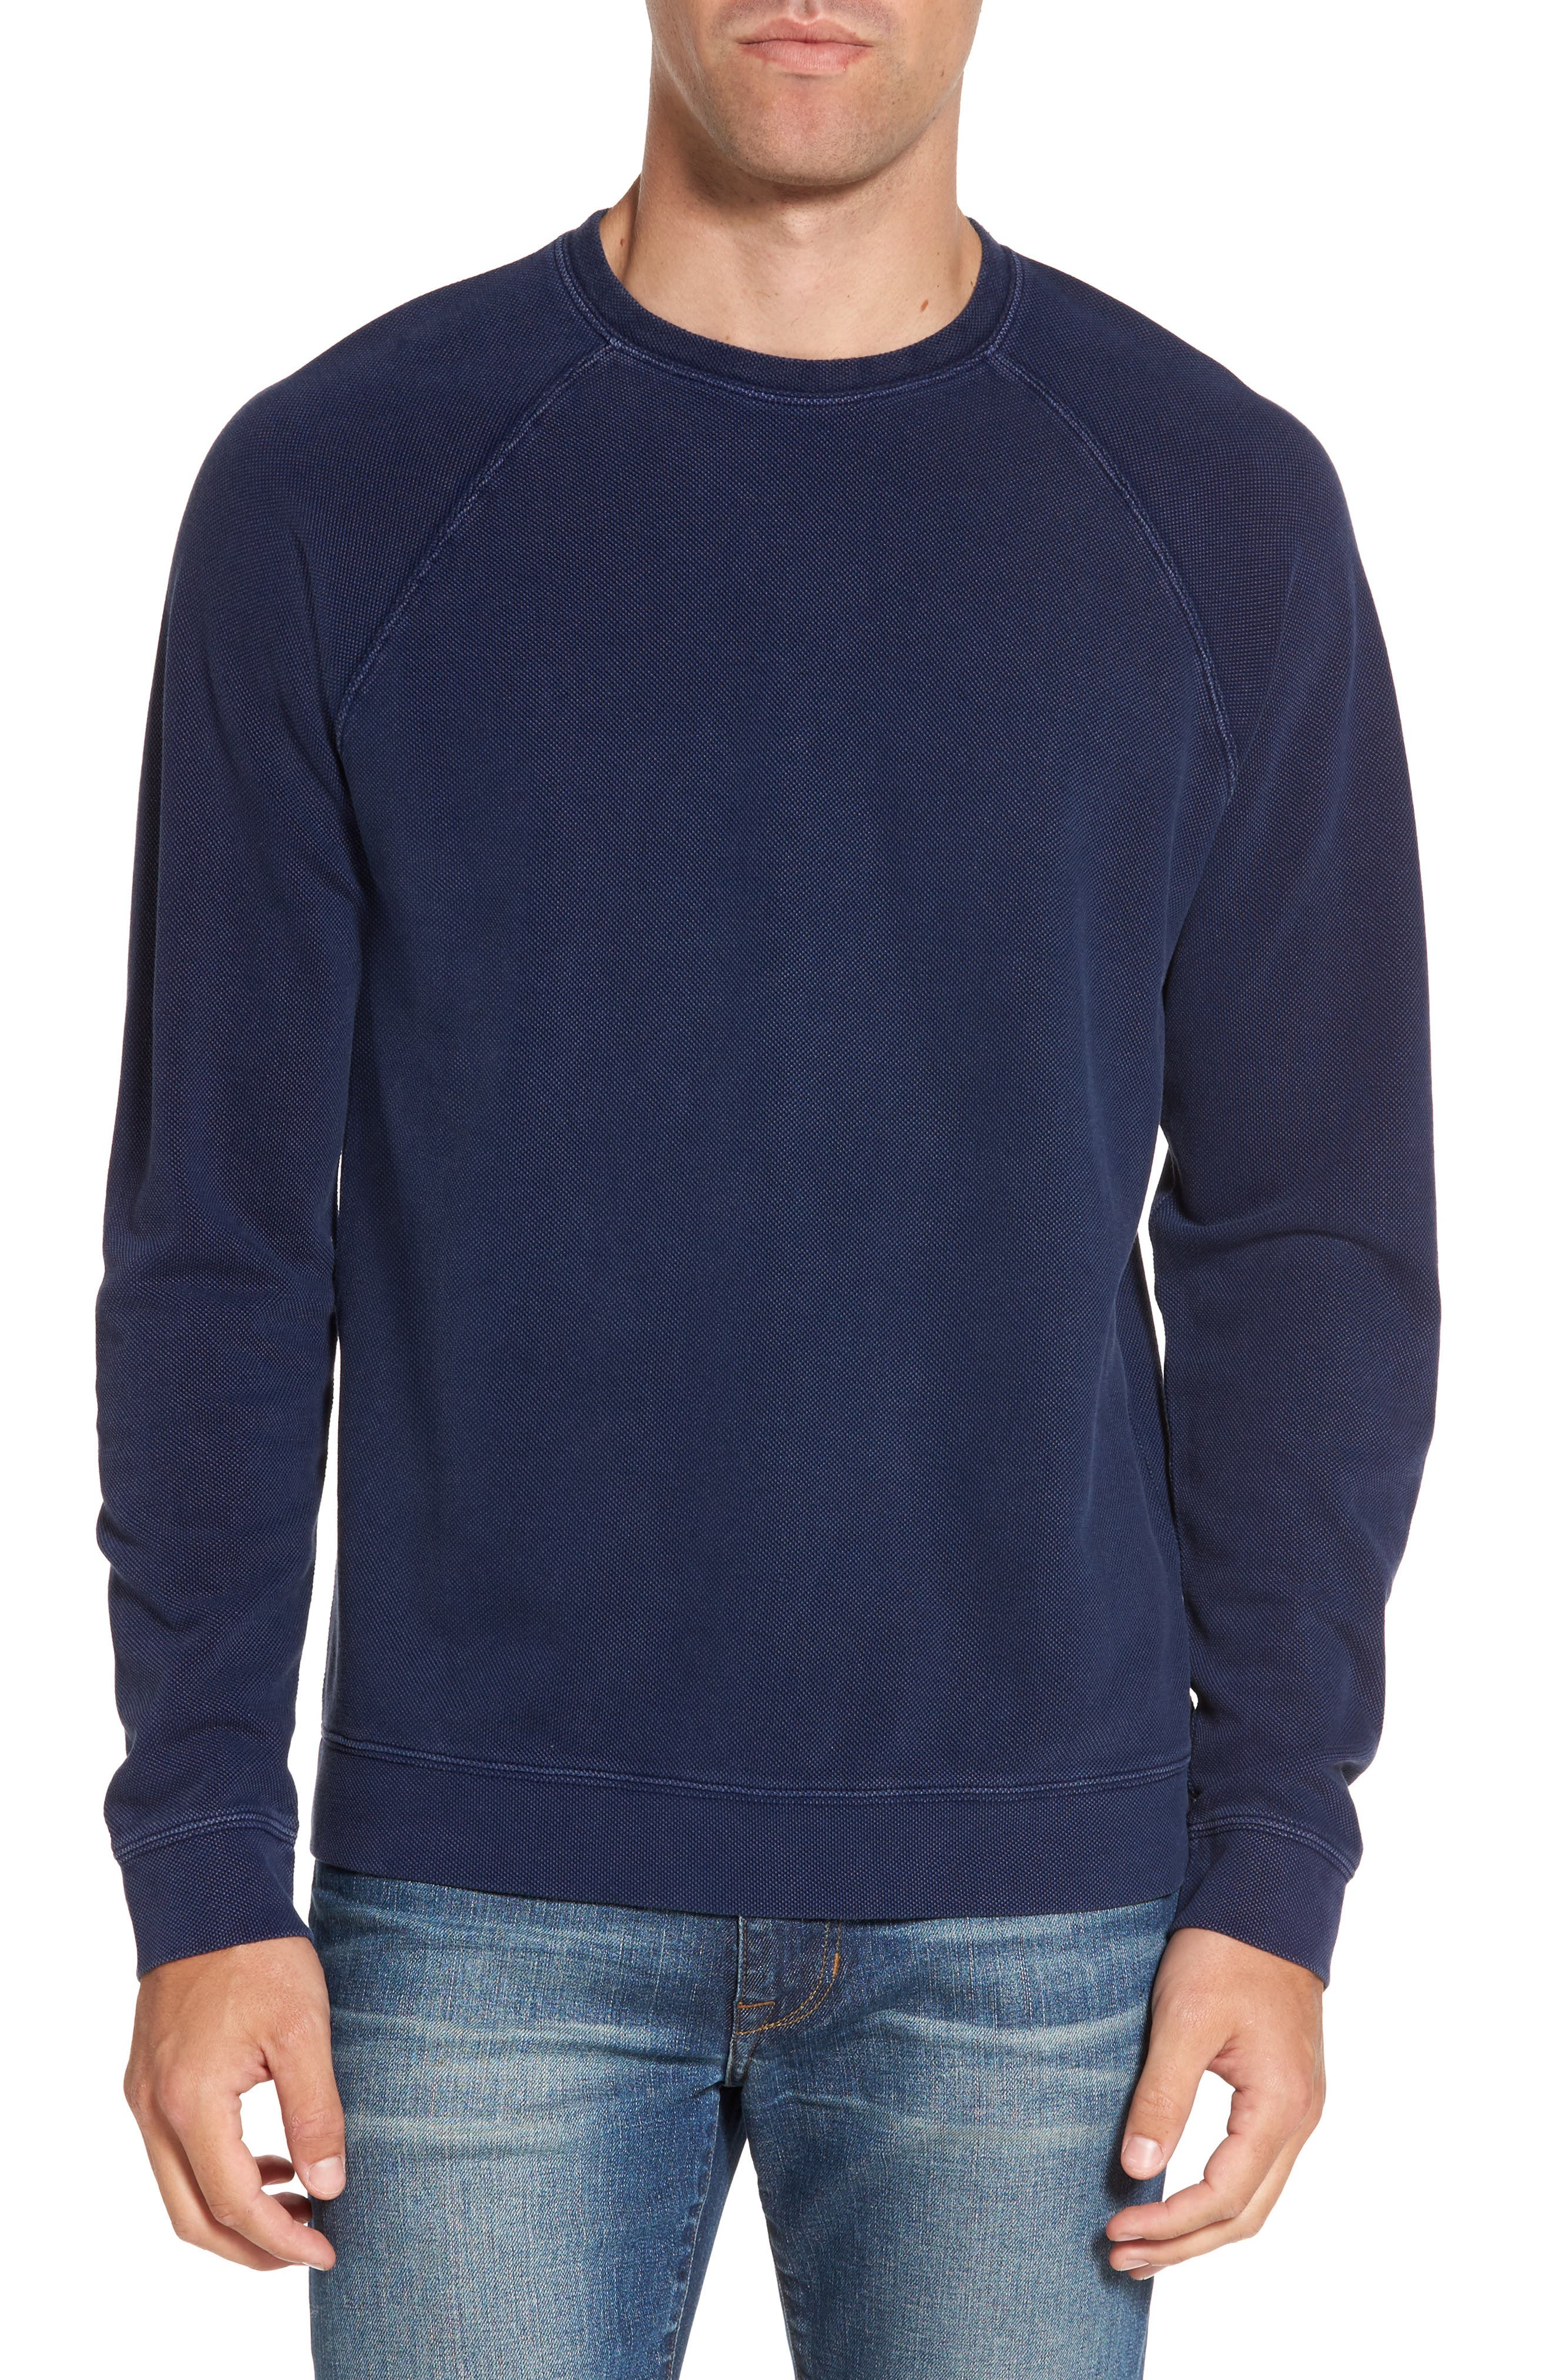 Nordstrom Men's Shop Piqué Sweatshirt